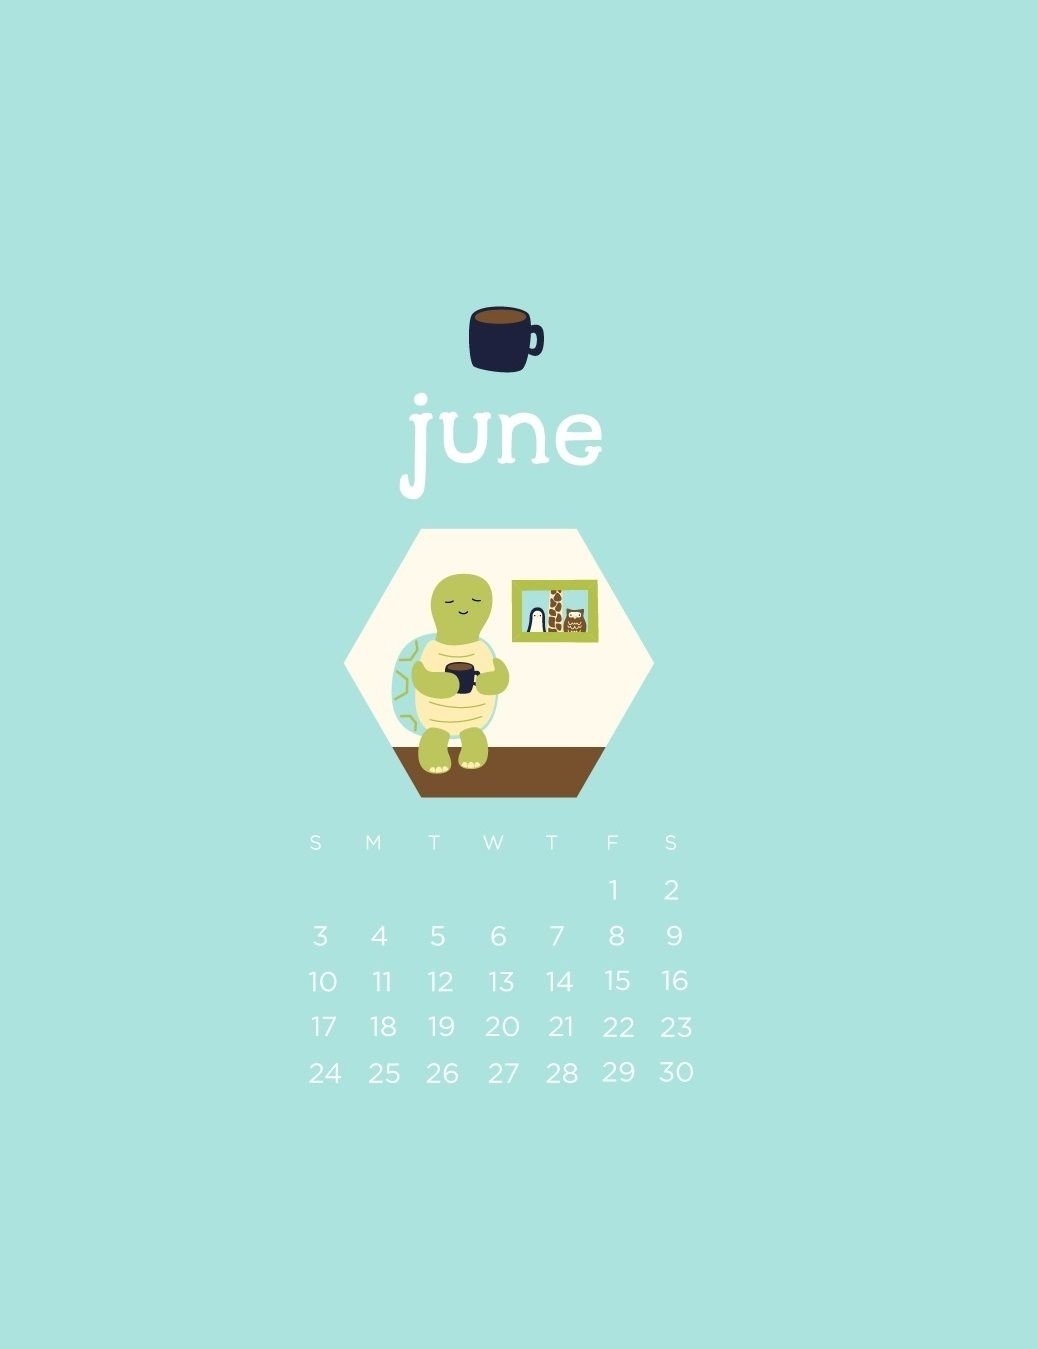 june 2018 iphone calendar wallpapers for background calendar 2018::June 2019 iPhone Calendar Wallpaper